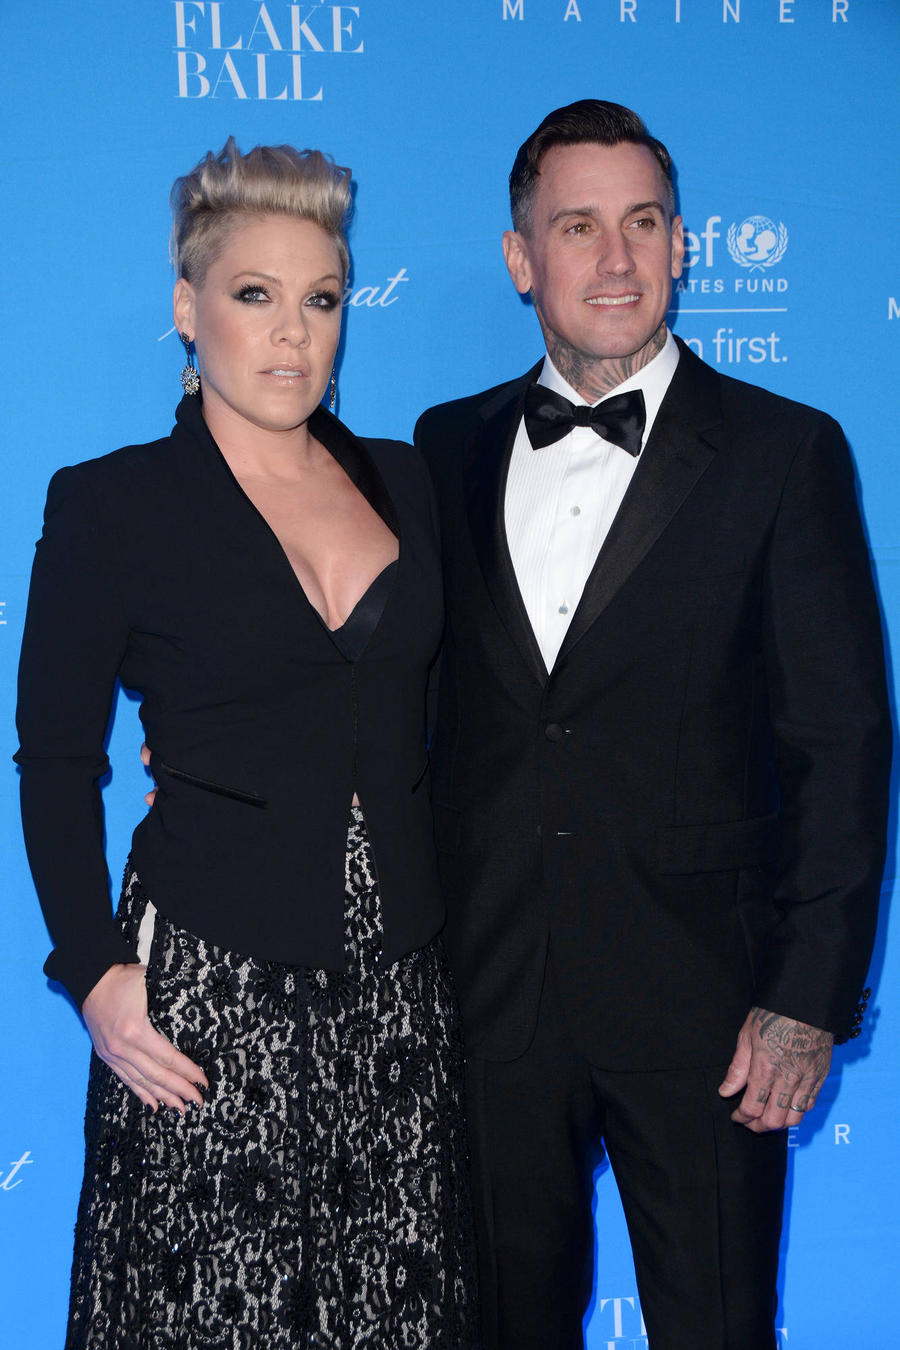 Pink And Her Husband Struggle To Make Time For Each Other